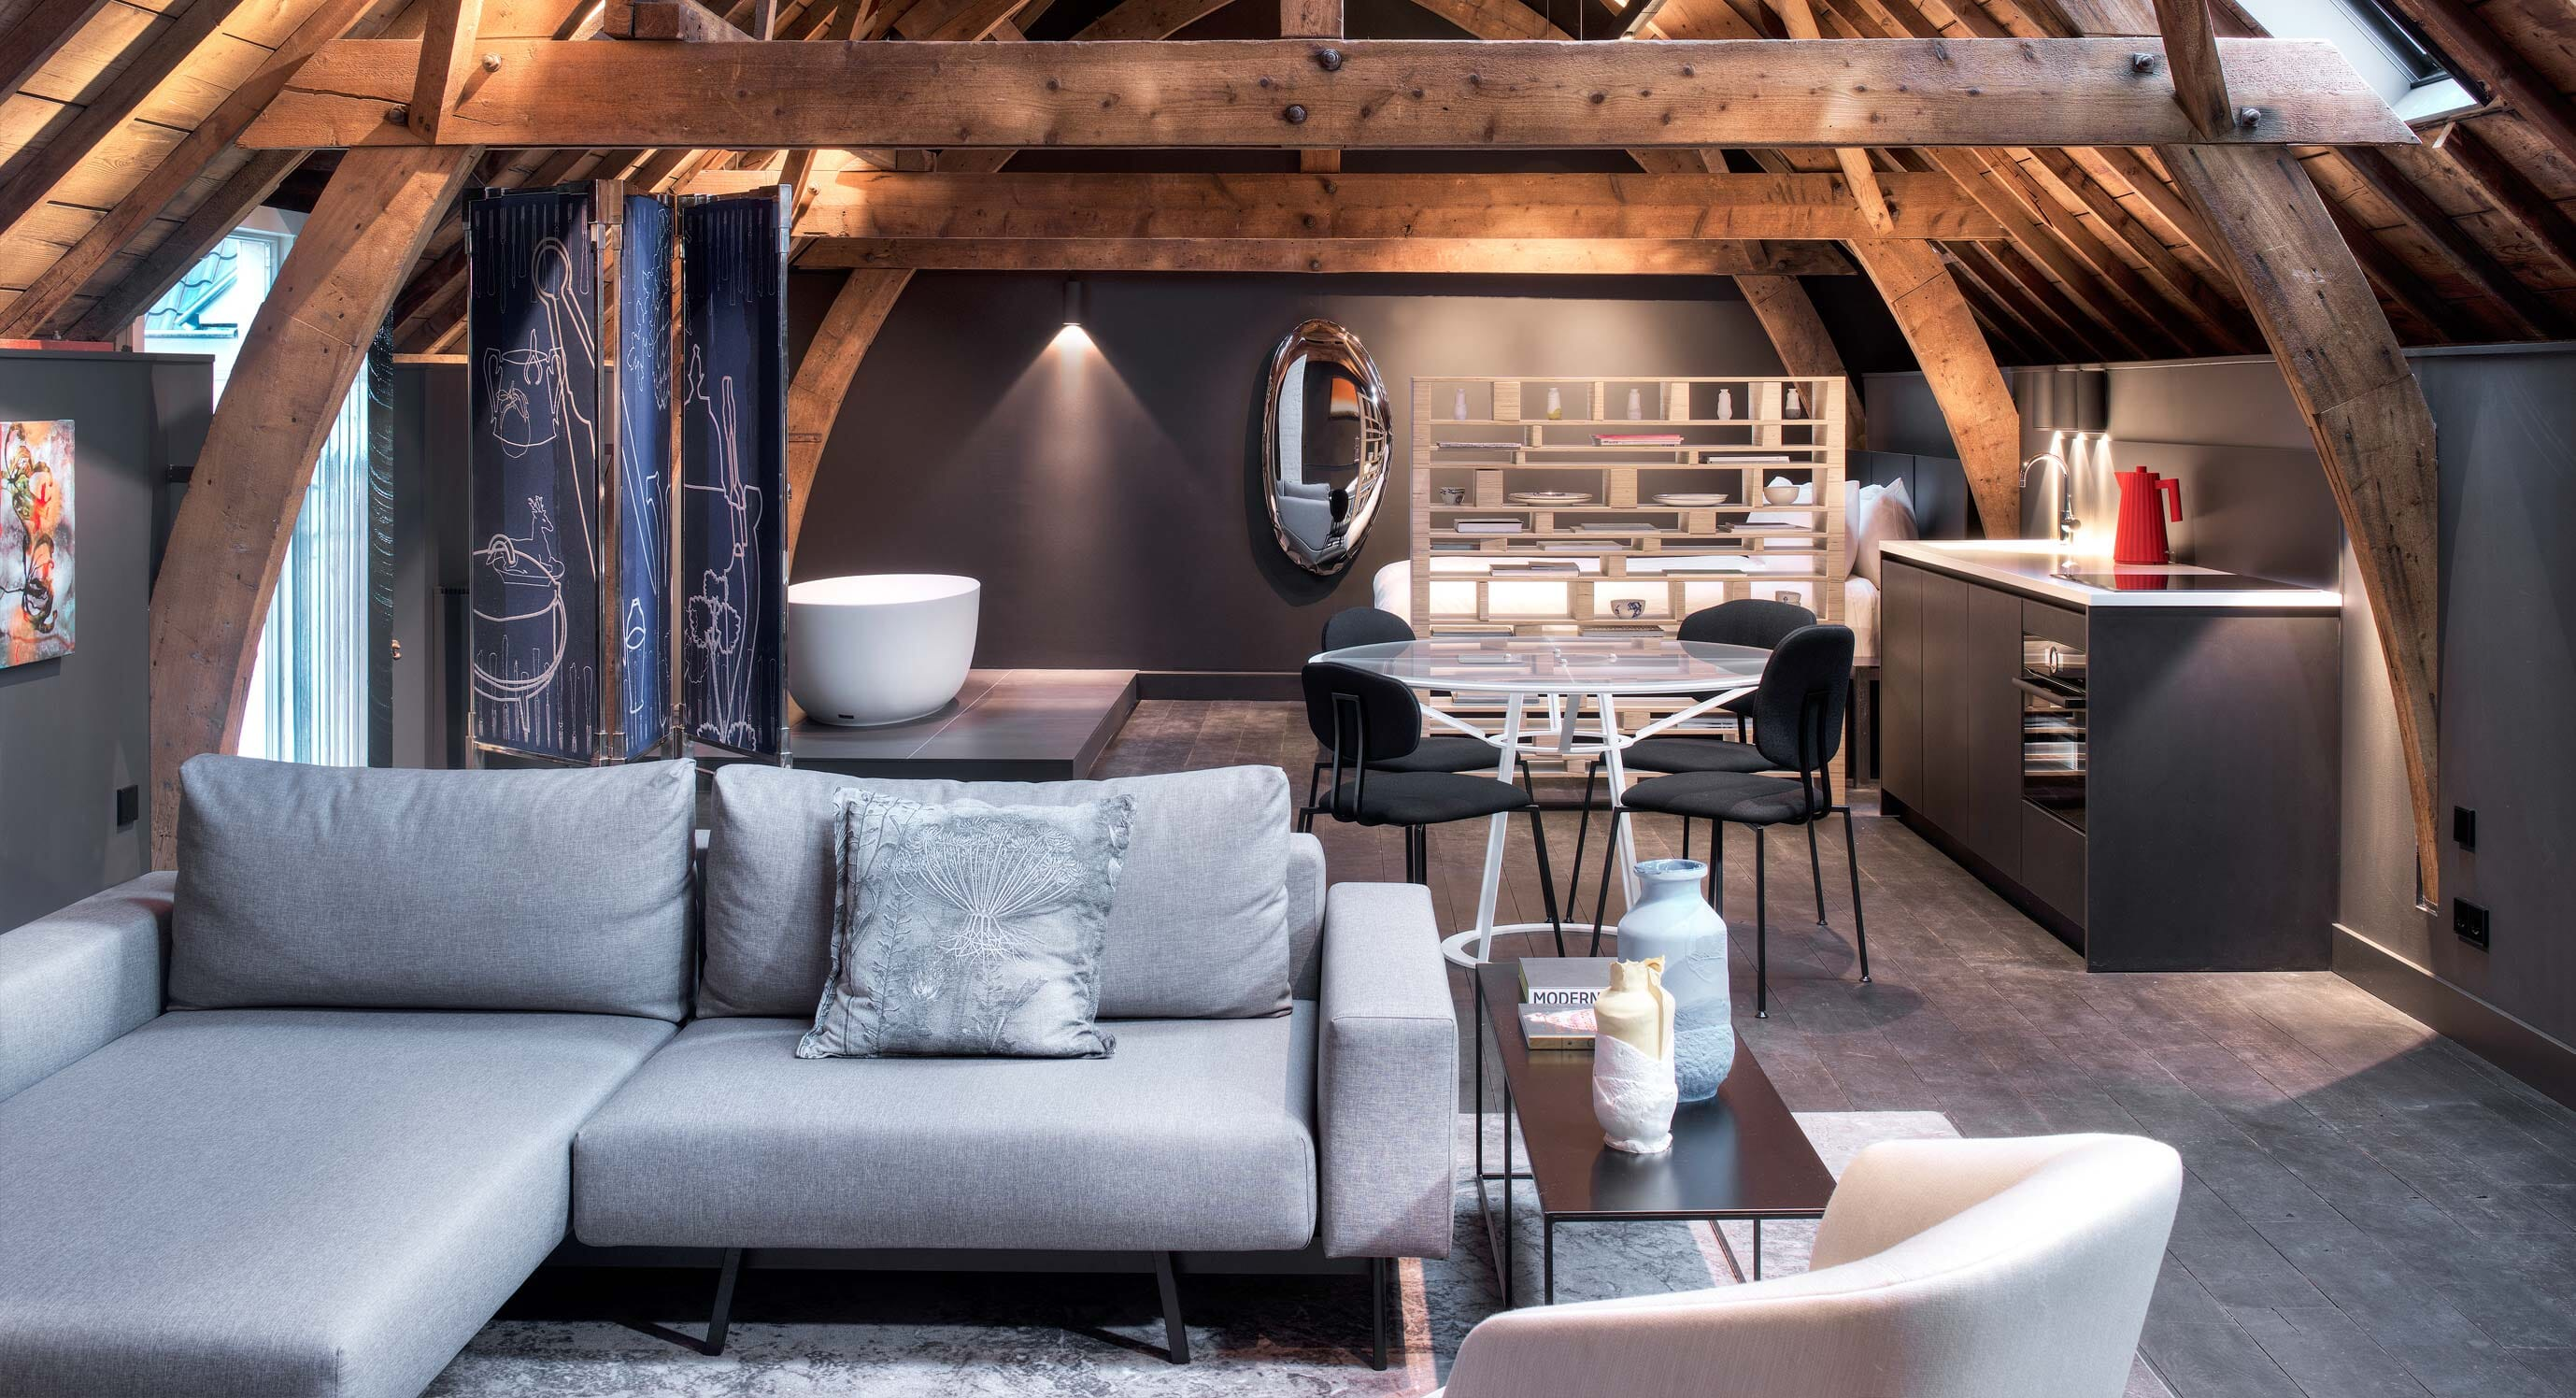 Where To Stay This Summer: Kazerne, Eindhoven